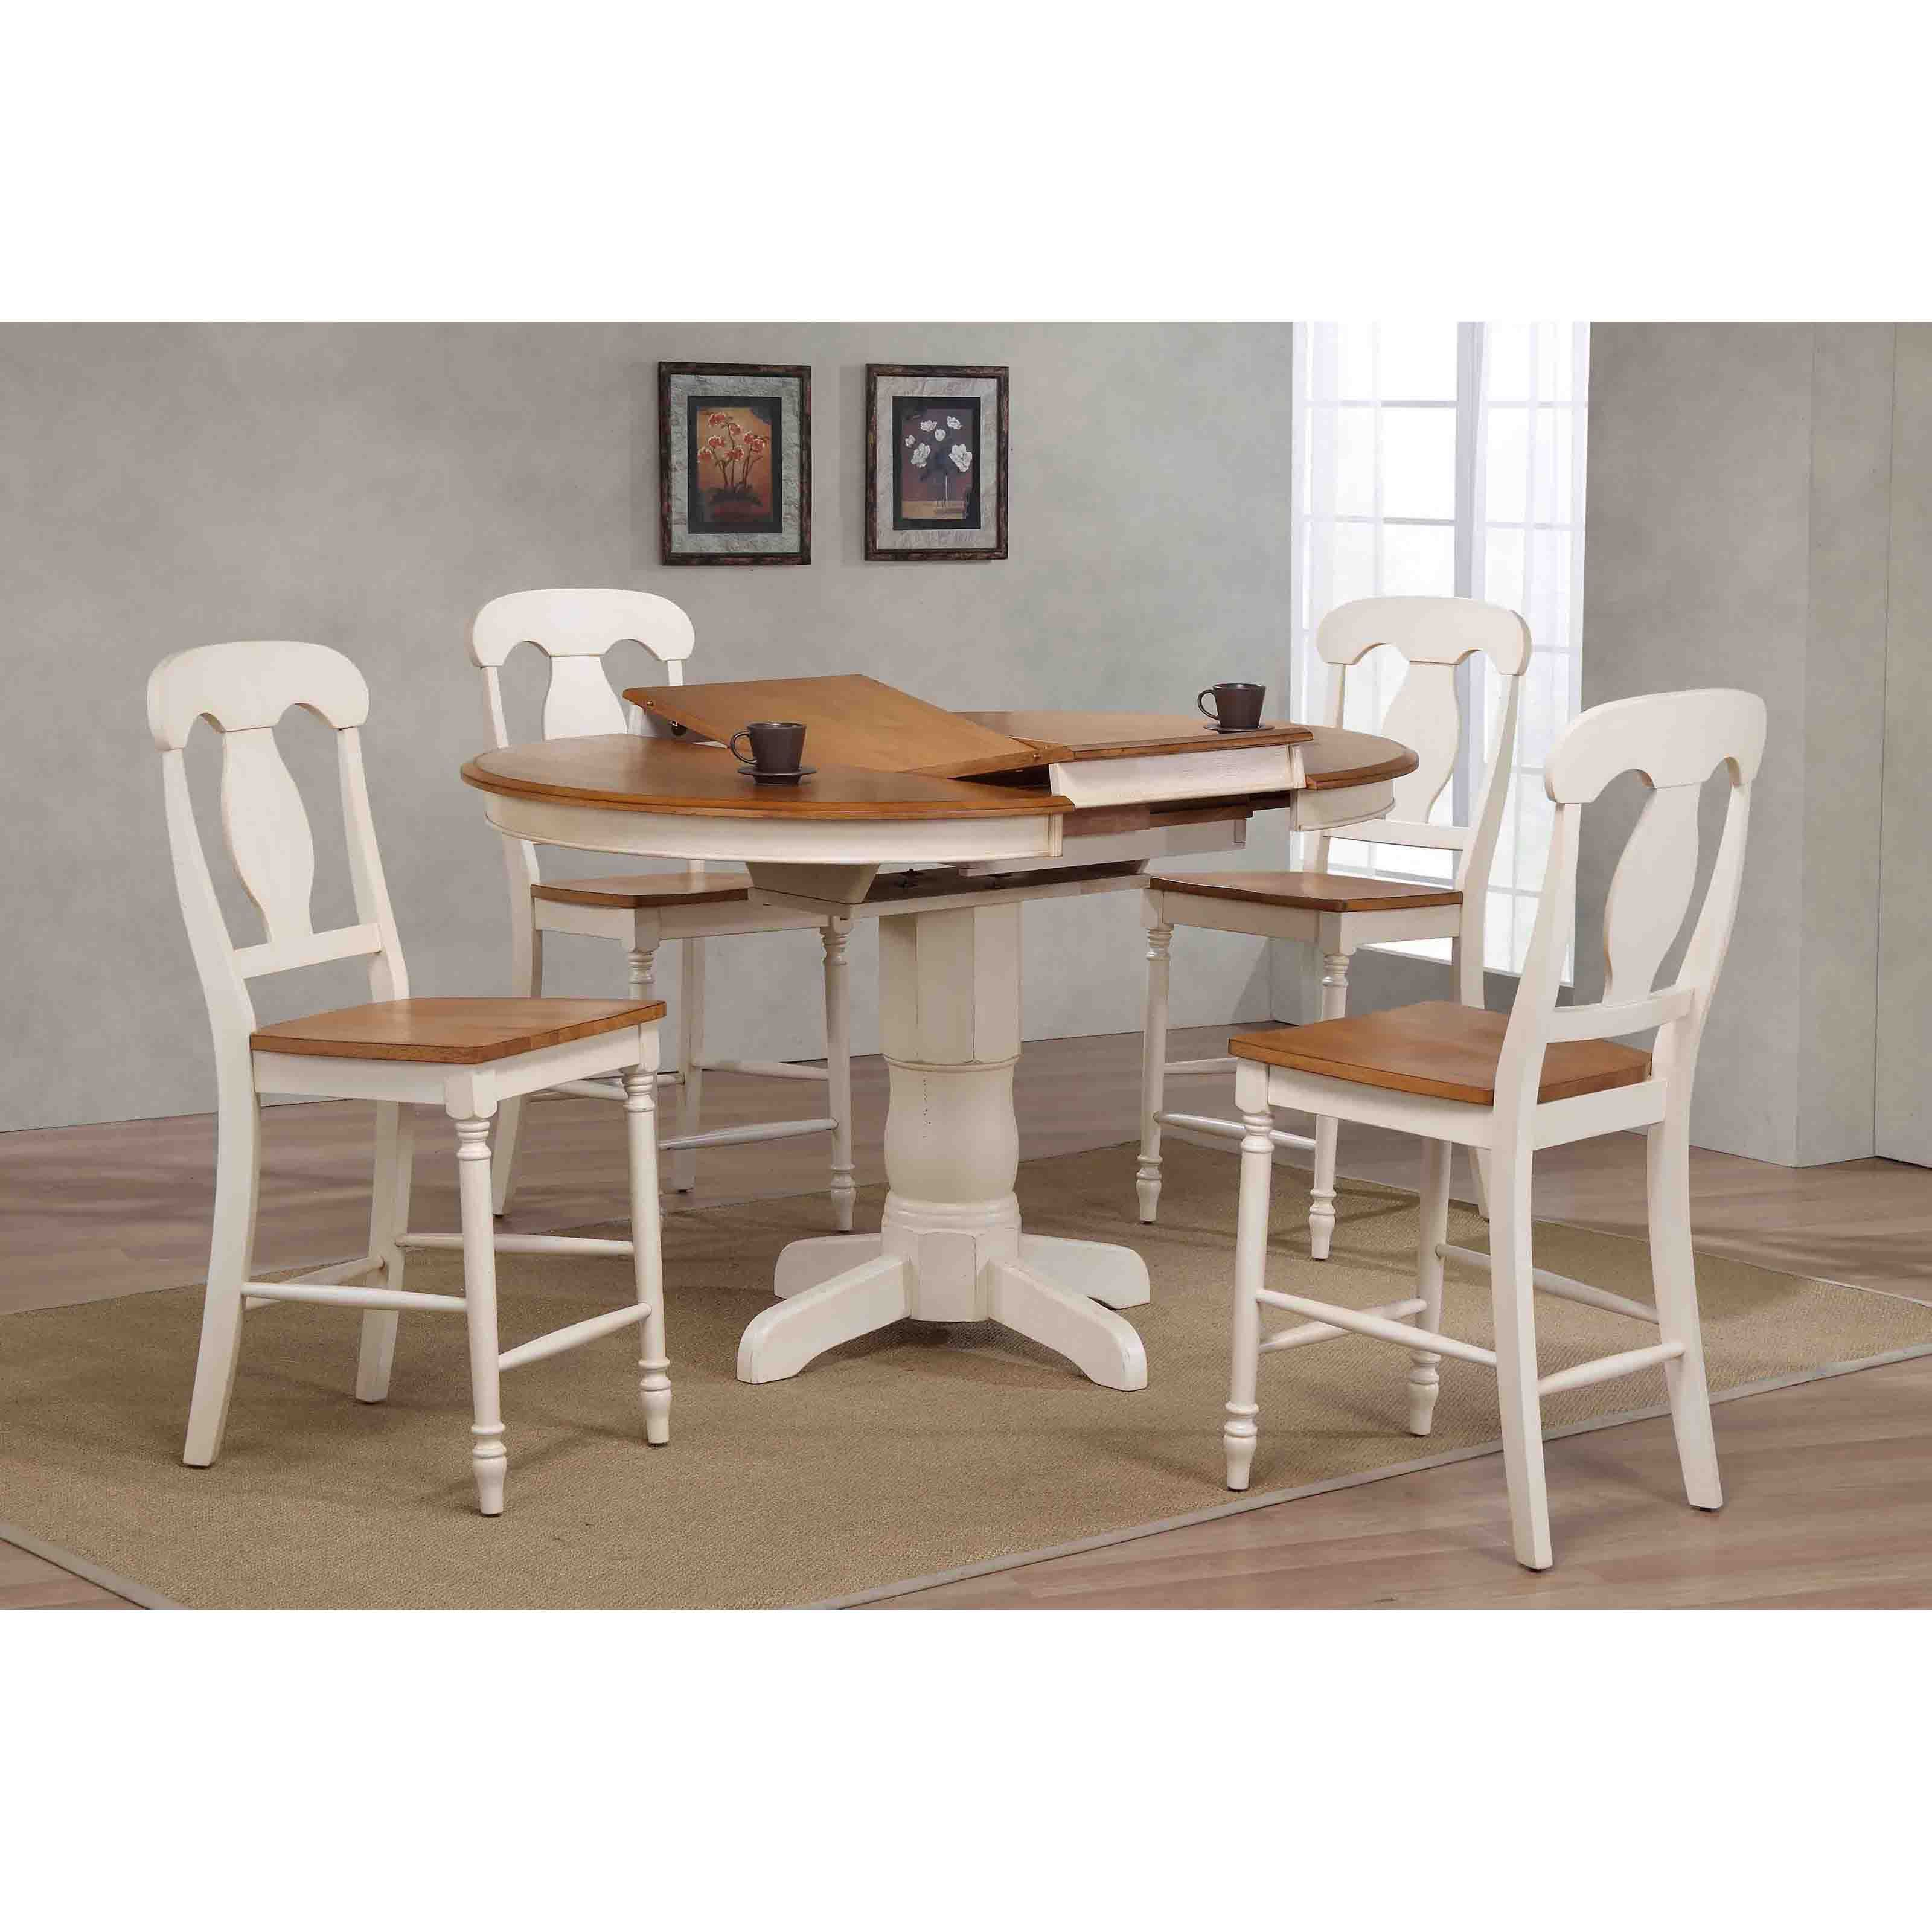 Iconic Furniture Napoleon Back 5 Piece Round Counter Height Dining Table Set    ICOC053